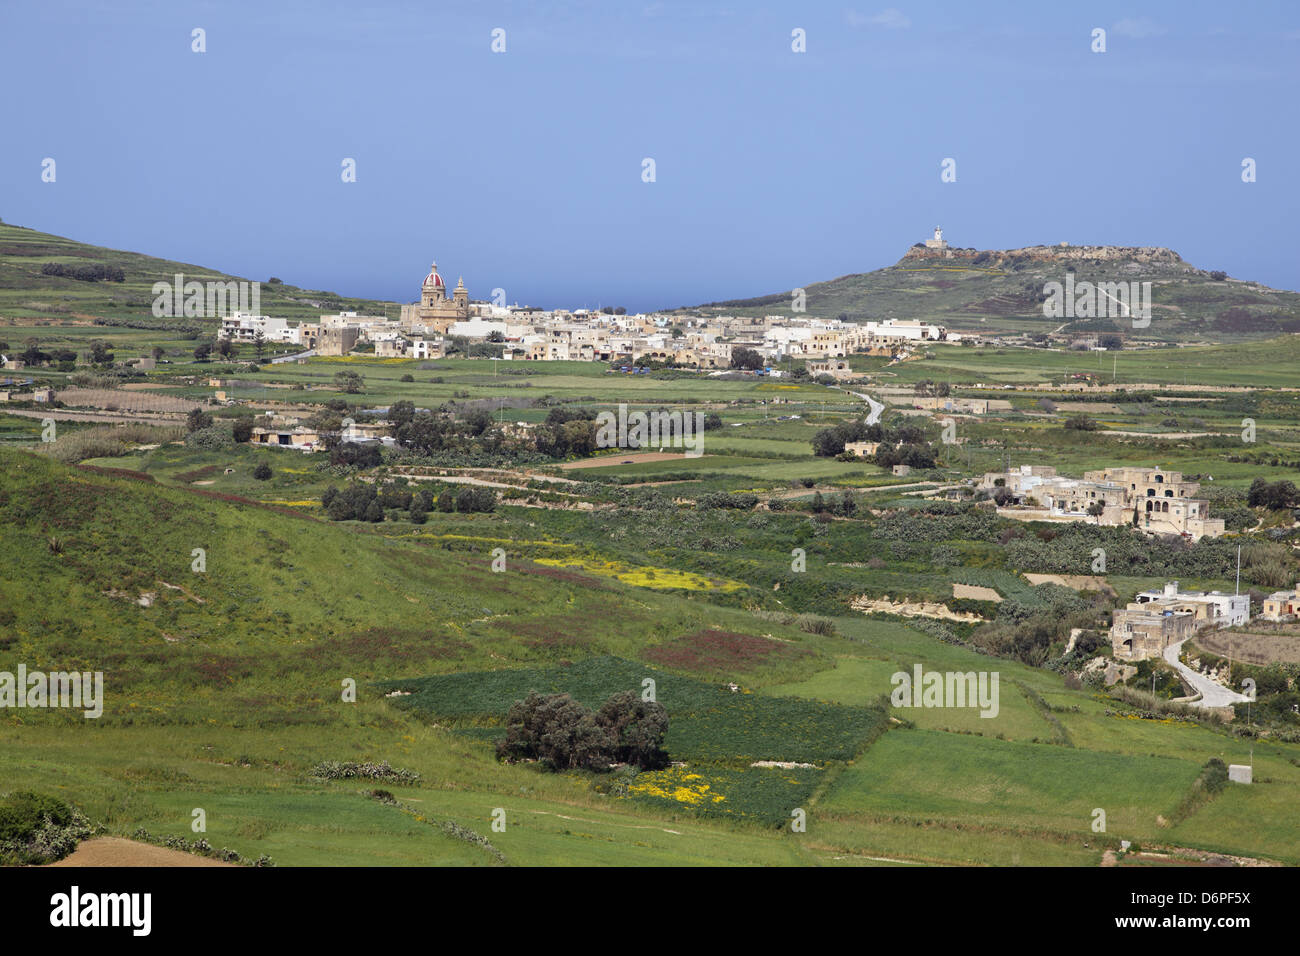 Malta, Gozo Victoria Rabat, view from the Citadel, overlooking Gharb city peaceful, harmonious, Malta, Gozo, Victoria - Stock Image